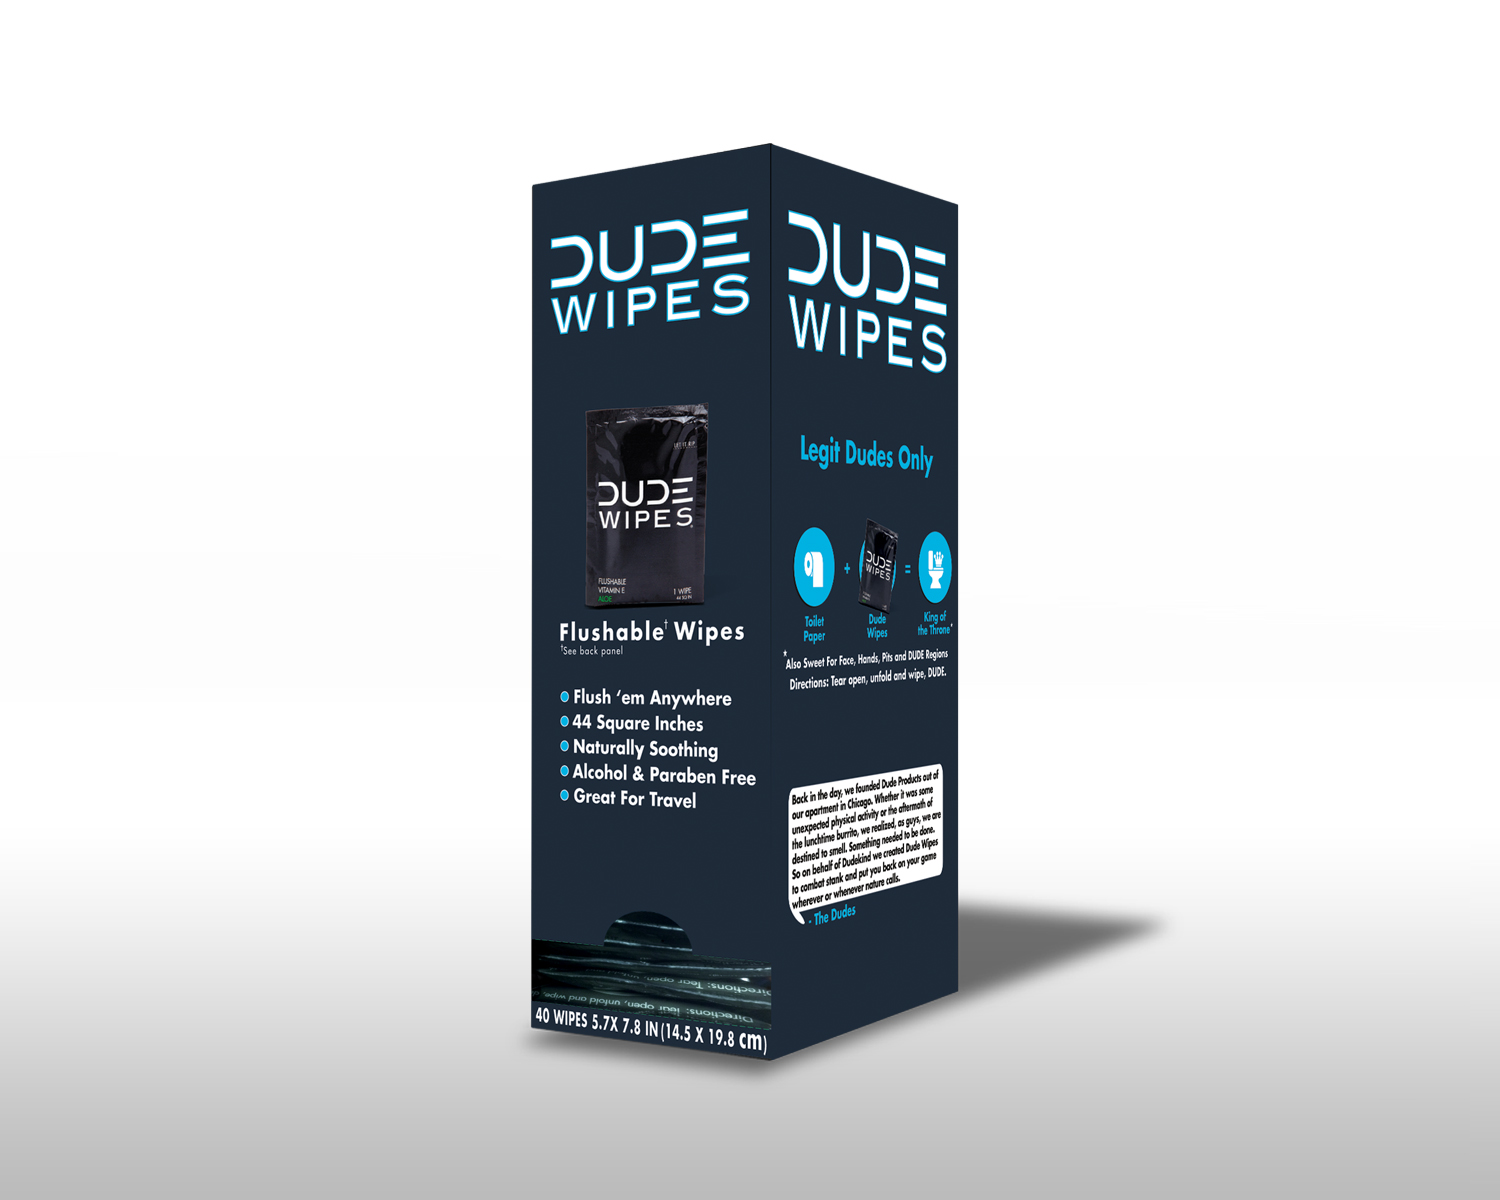 DudeWipes_Box.jpg